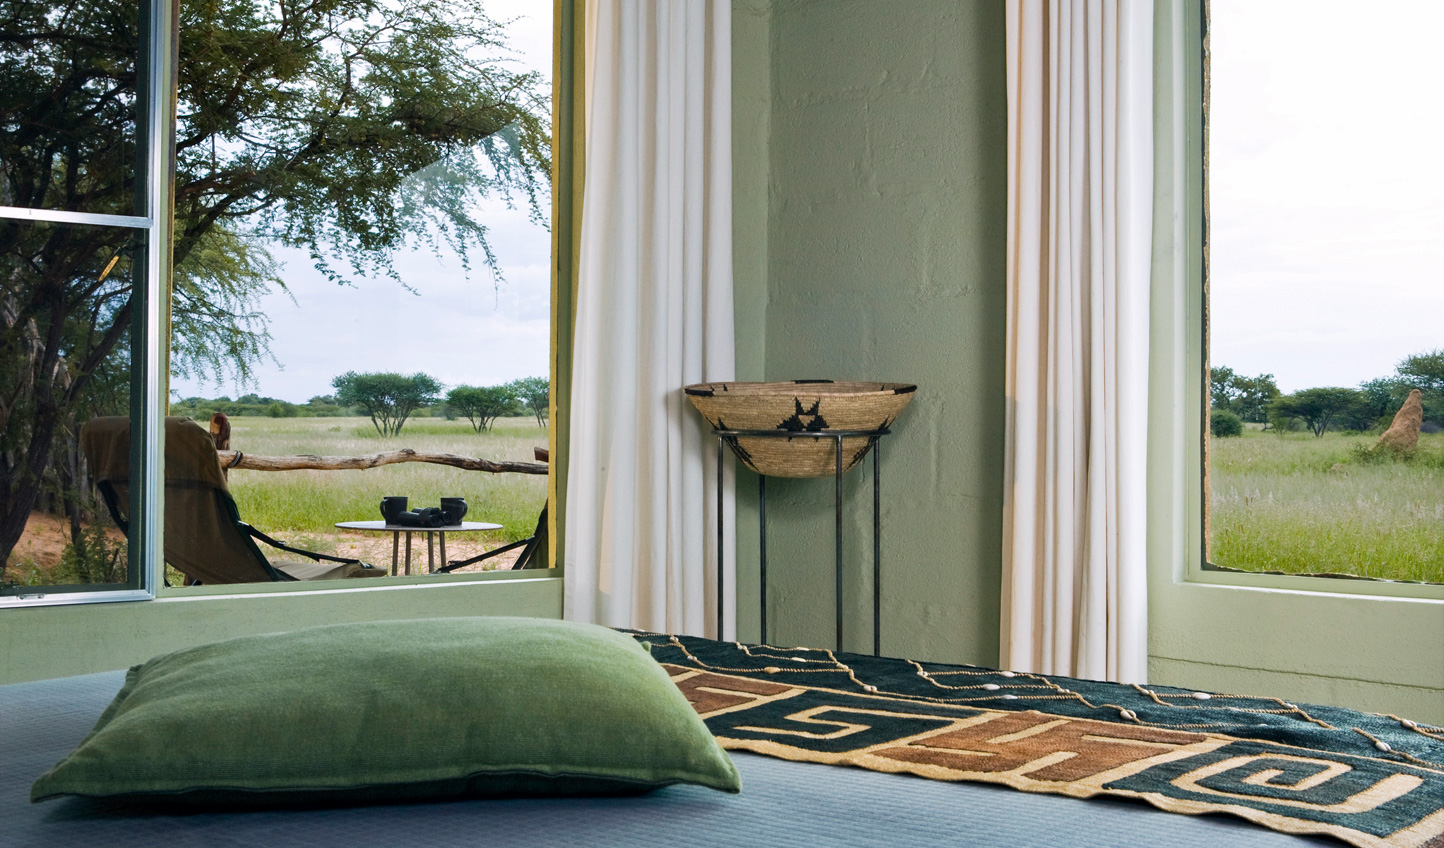 Beautiful safari-chic design complements your surroundings